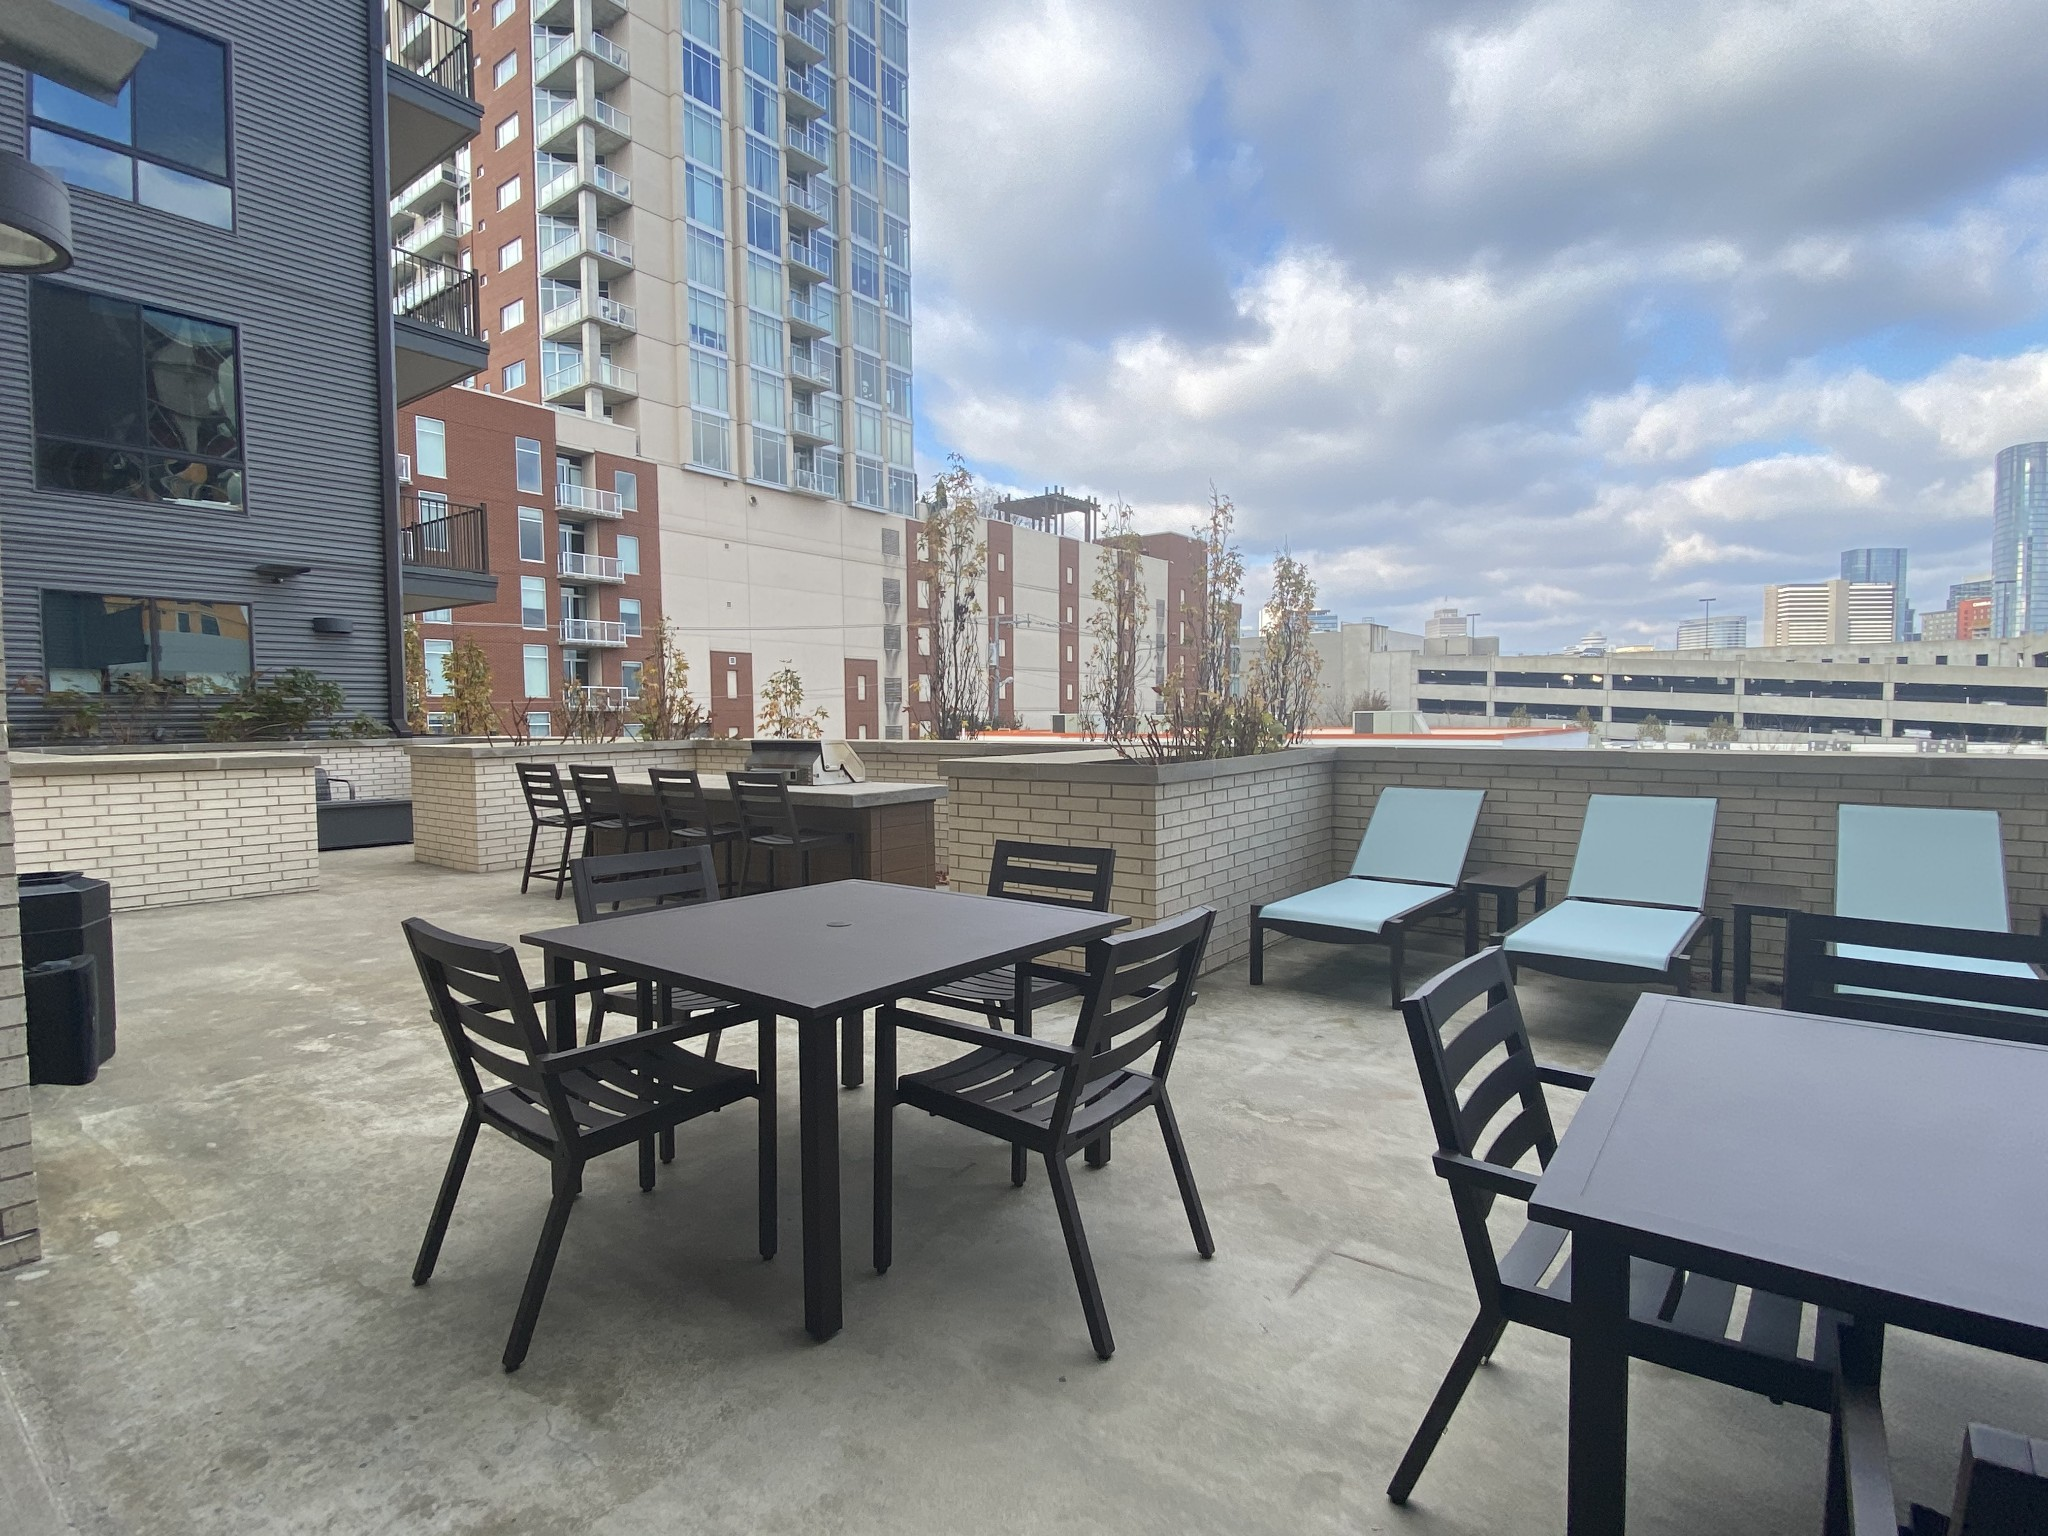 1002 Division St #207 Property Photo - Nashville, TN real estate listing